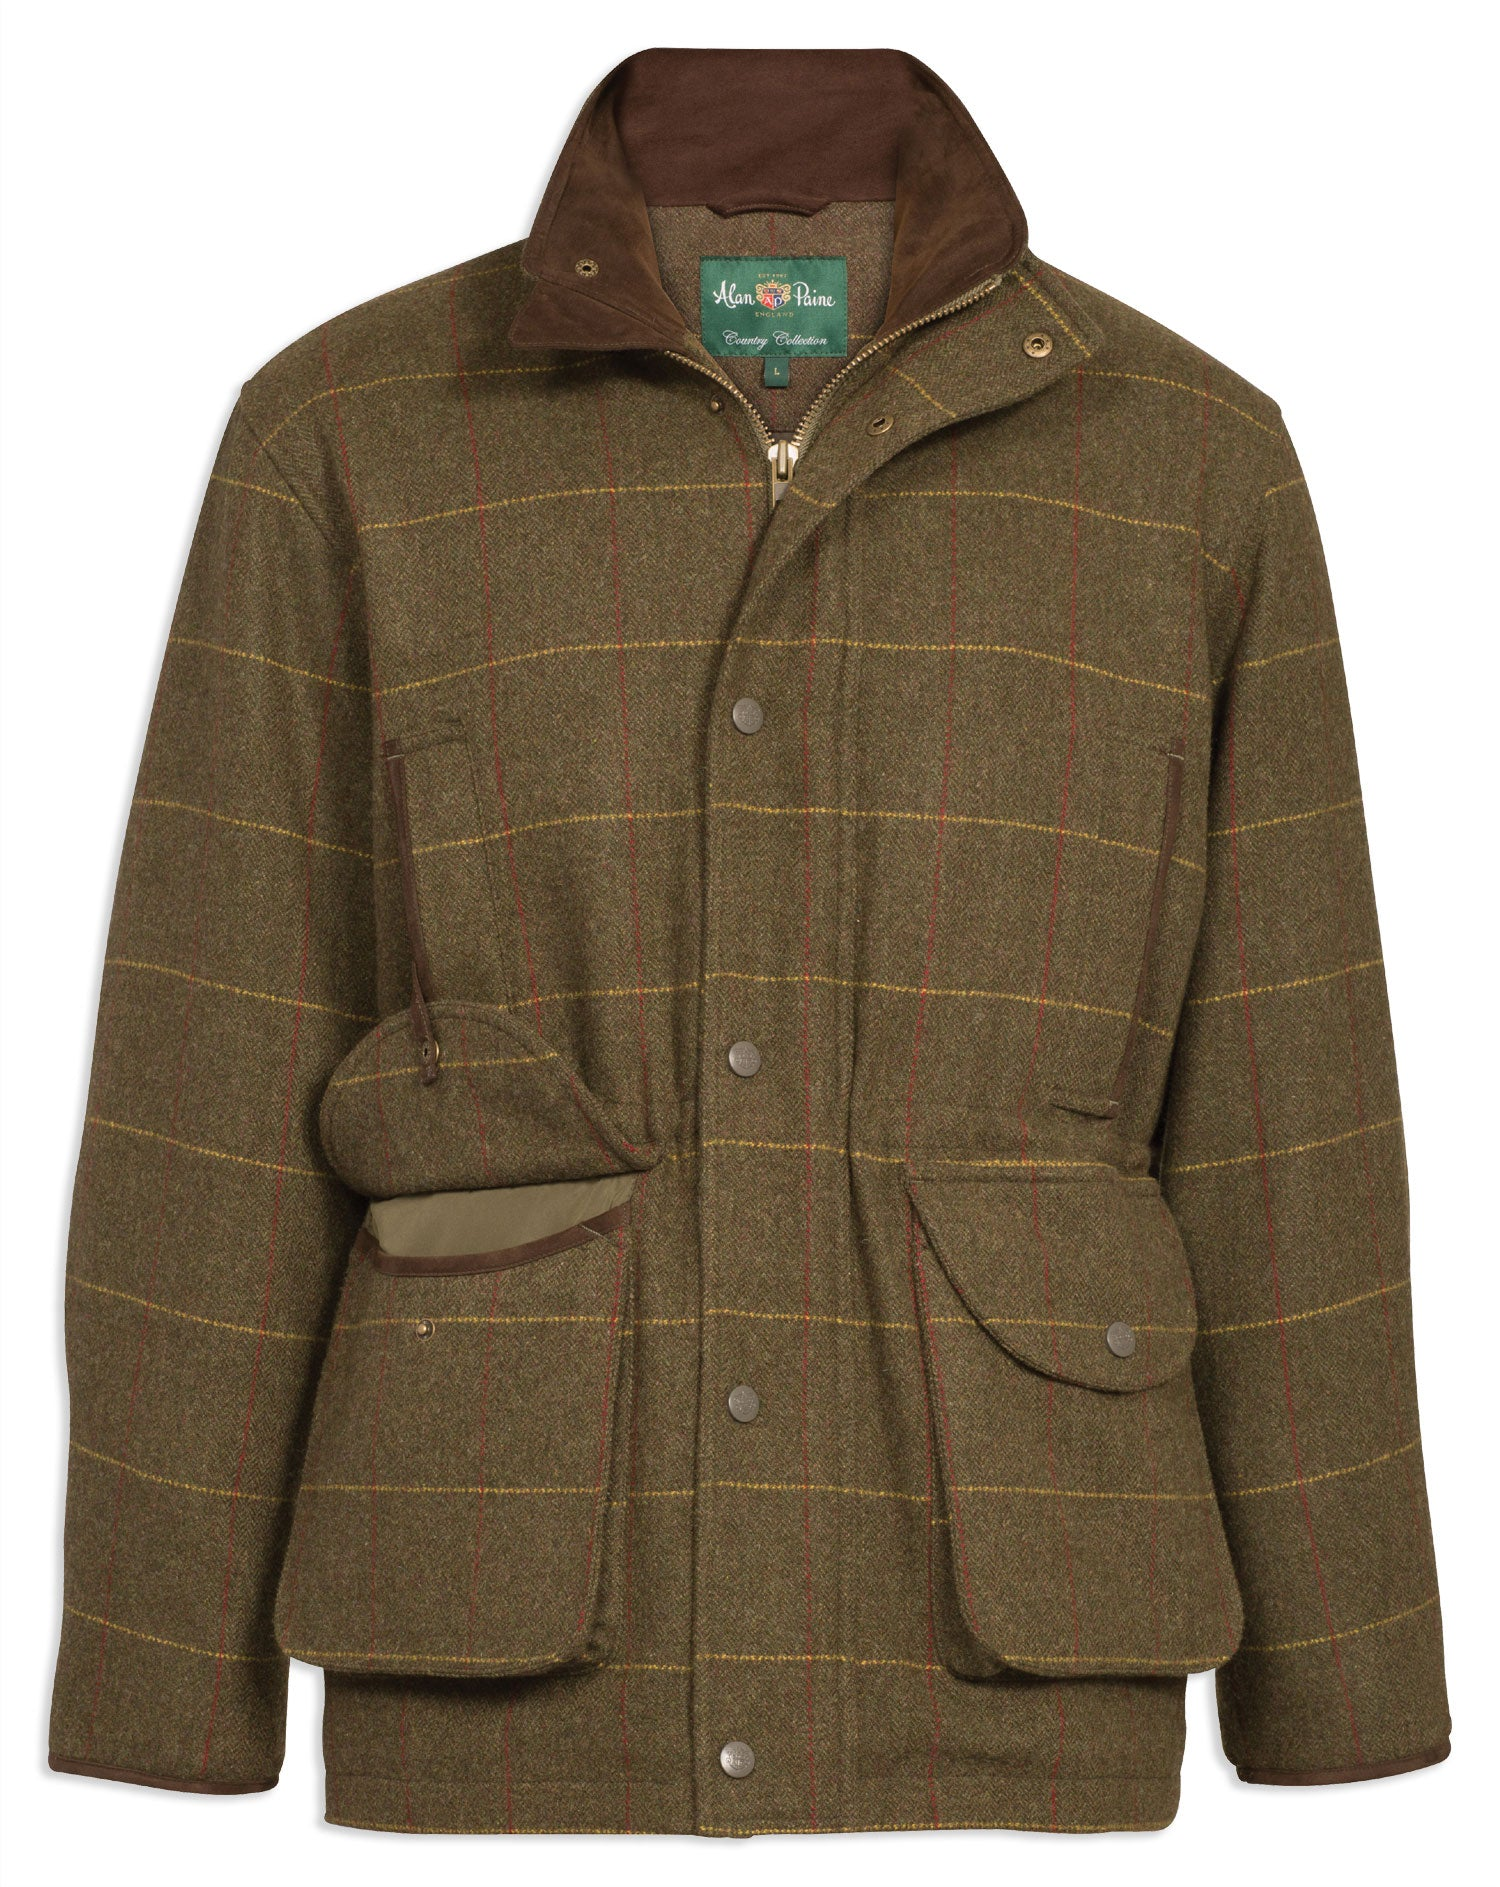 Combrook Men's Tweed Shooting Coat by Alan Paine